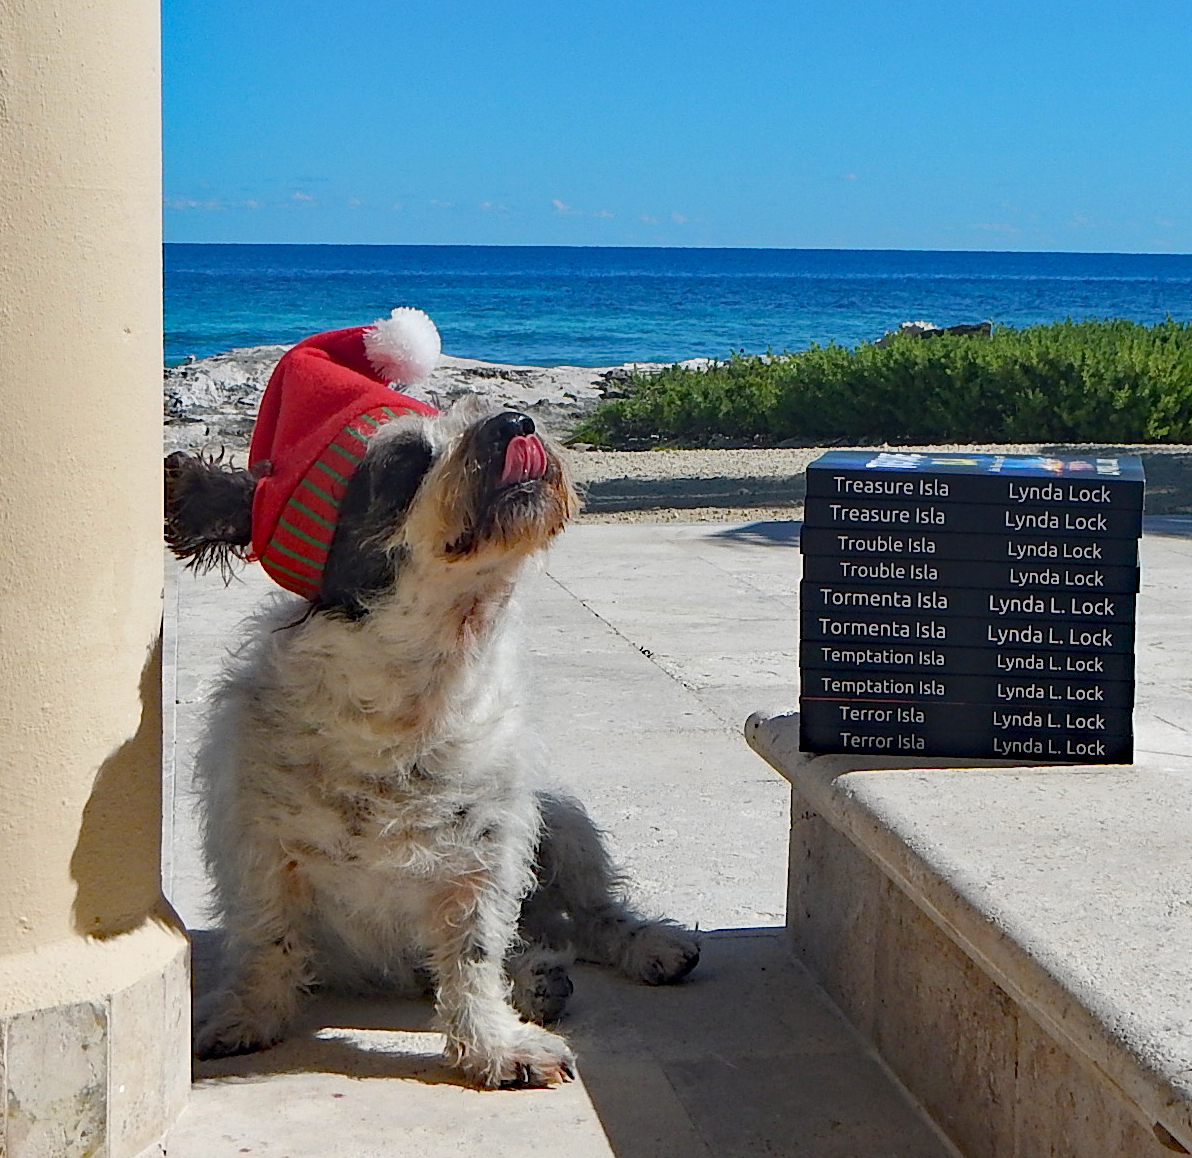 @Basset_Polly Gud mornin' hooman and fur-babies. Will youse follows us back? Woof! Woof! Sparky, hero of the Isla Mujeres Mystery novels. #rescueismyfavouritebreed #dogsoftwitter #readerswanted #writerslift #mondaythoughts #mystery